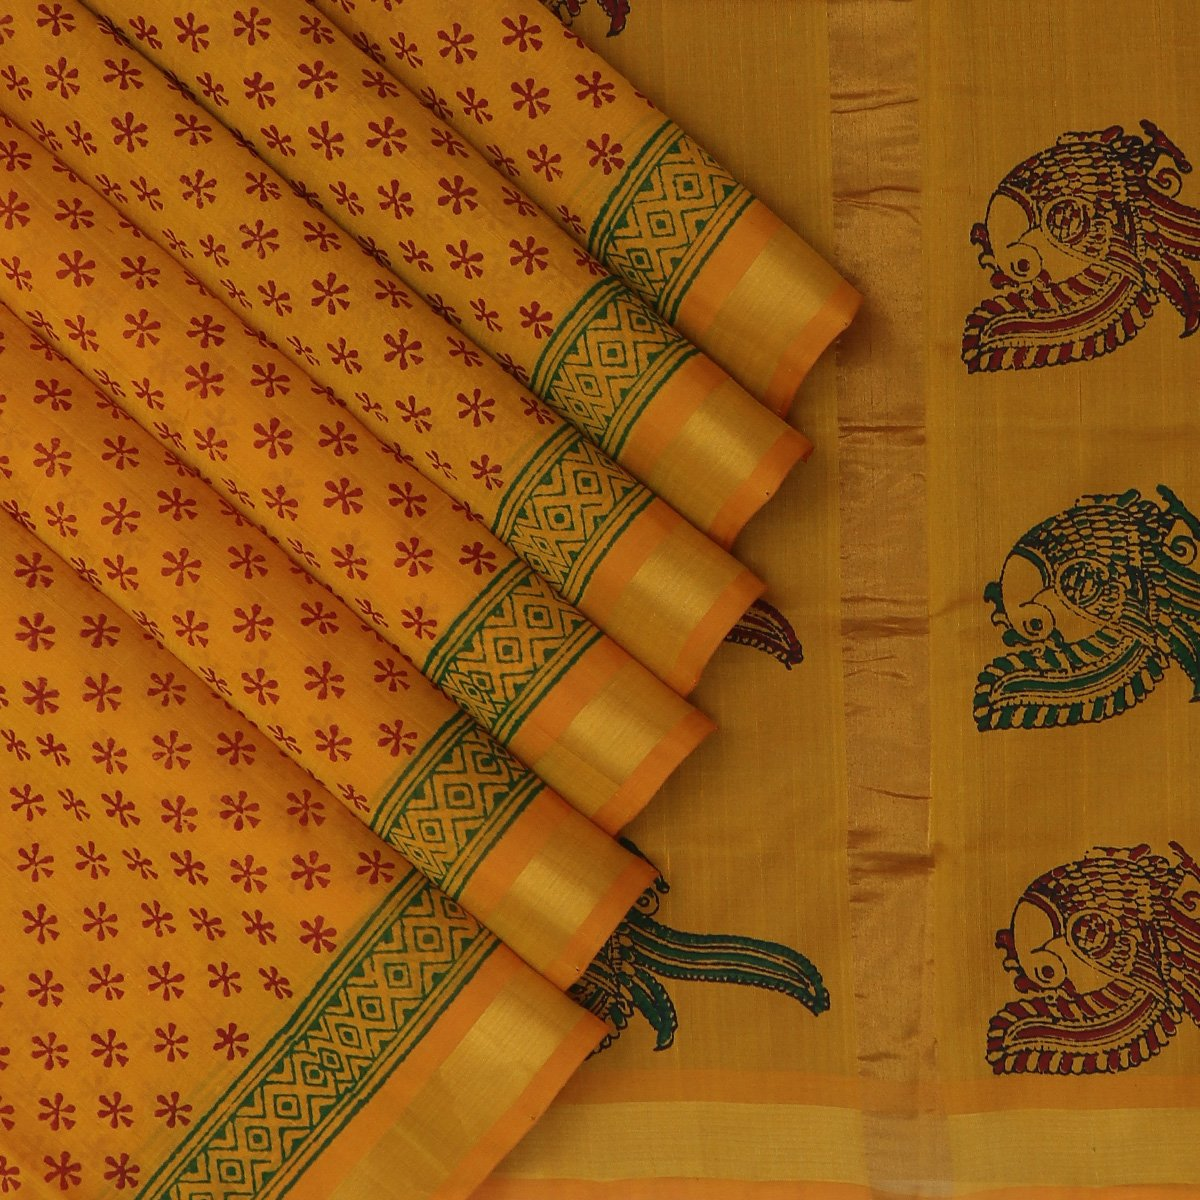 Printed Silk Cotton Saree Honey color with Simple Zari border